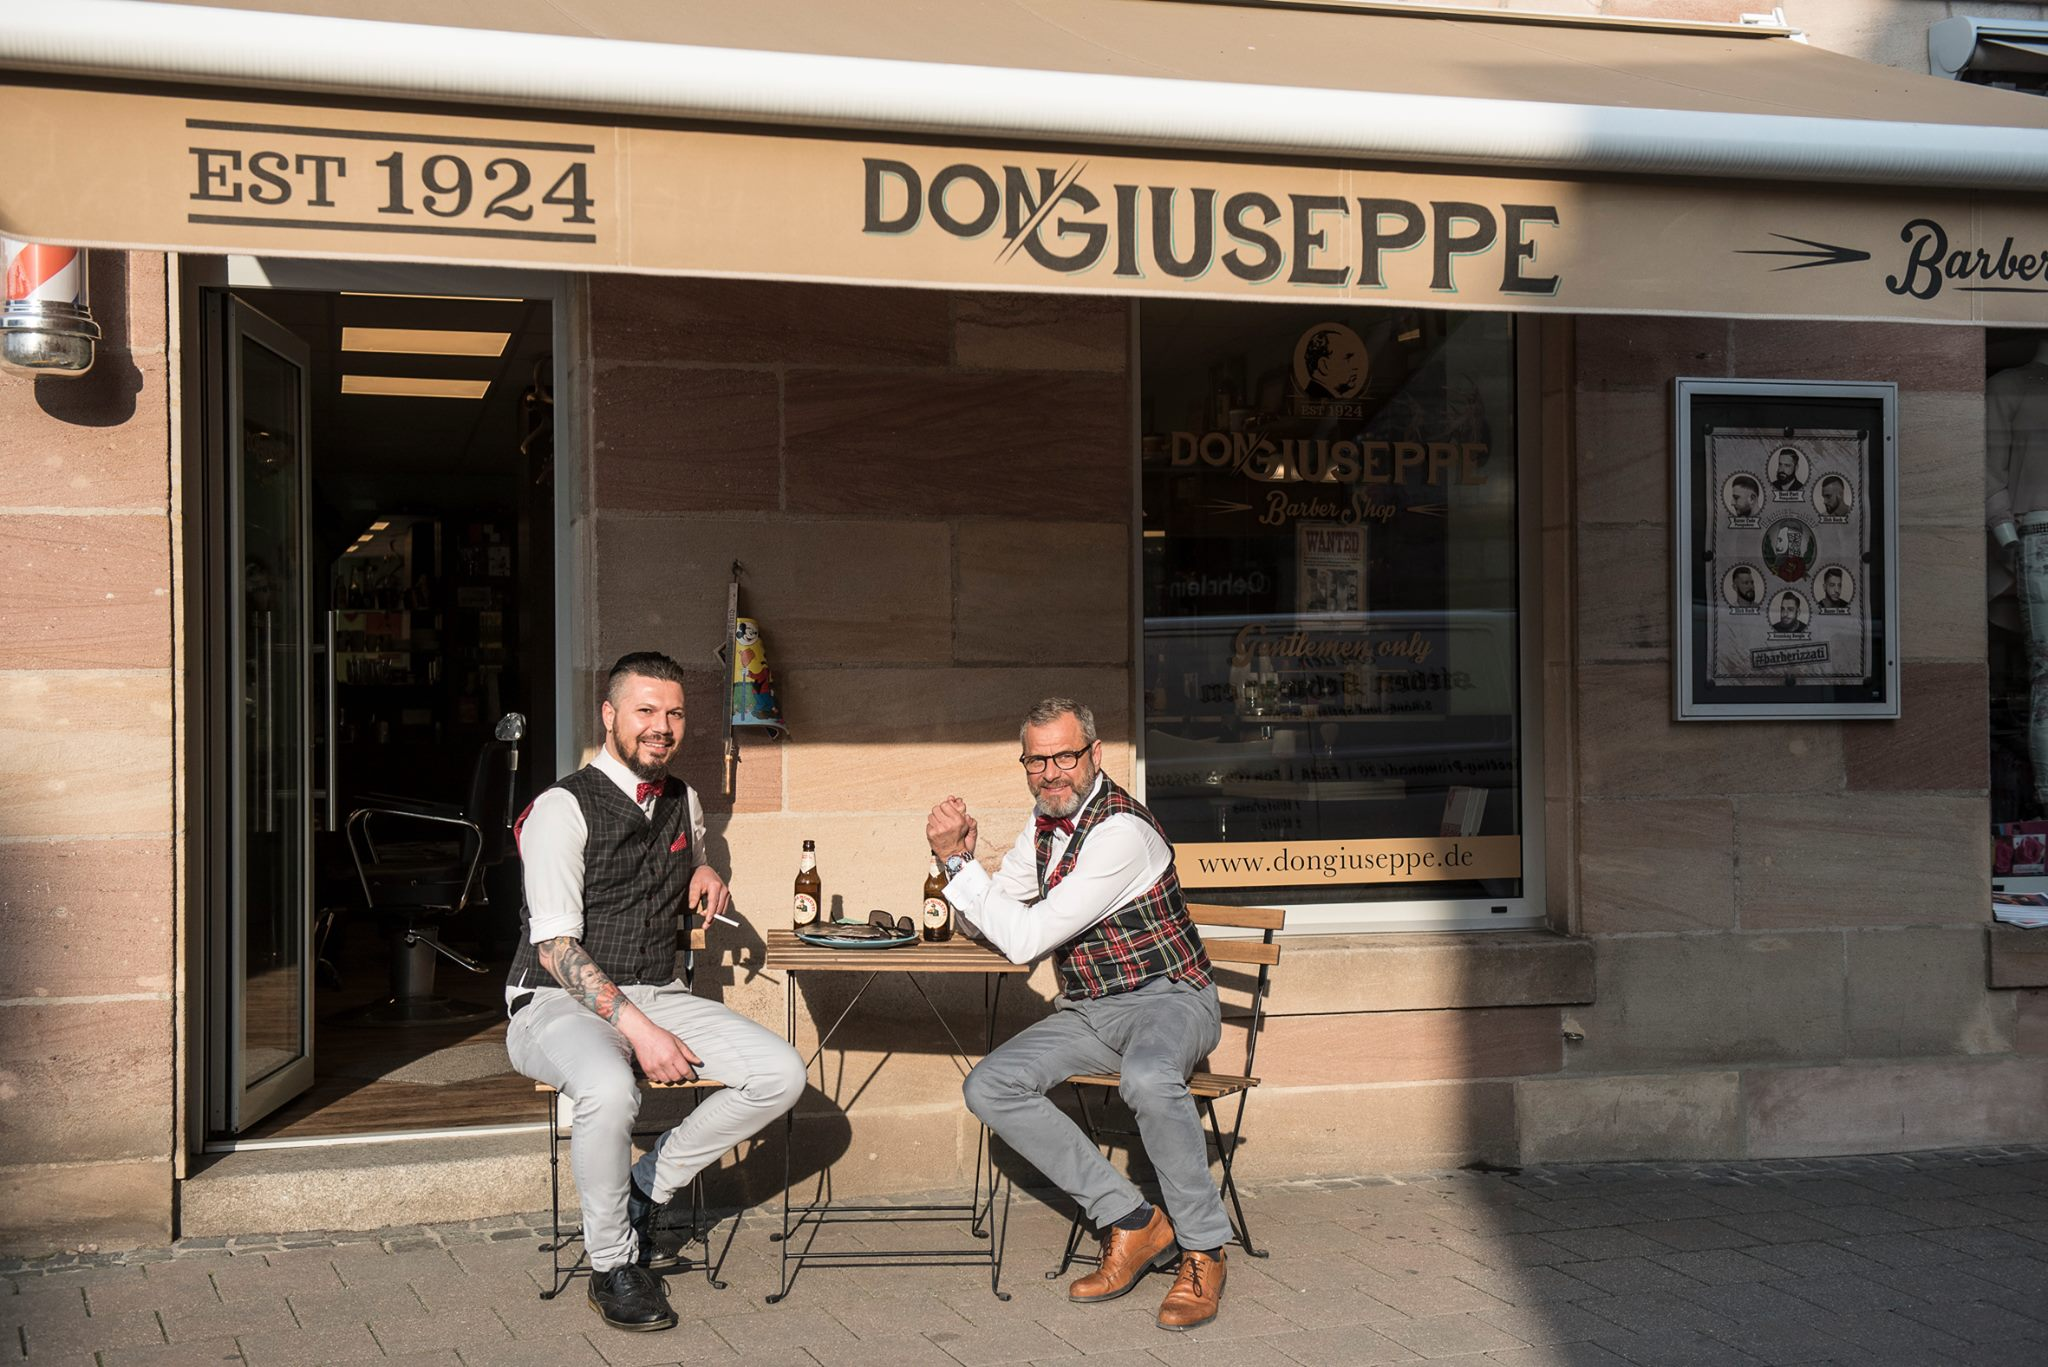 Don Giuseppe, der Barbershop in Fürth